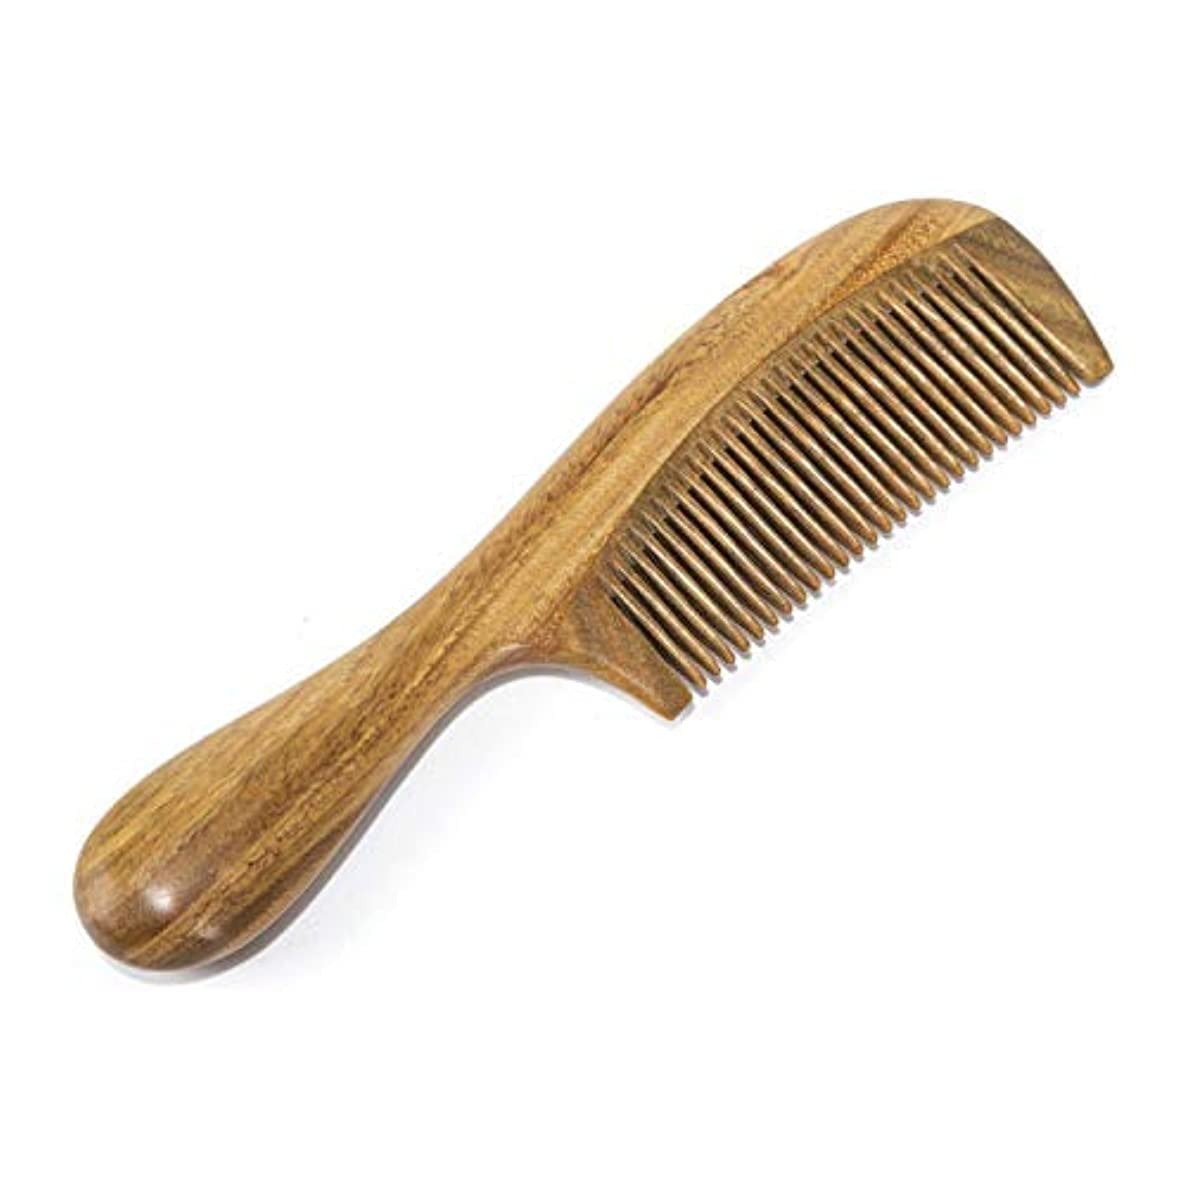 BEINY Natural Green Sandalwood Comb - Anti Static Wooden Hair Comb with Thickening Round Handle for Hair Health...